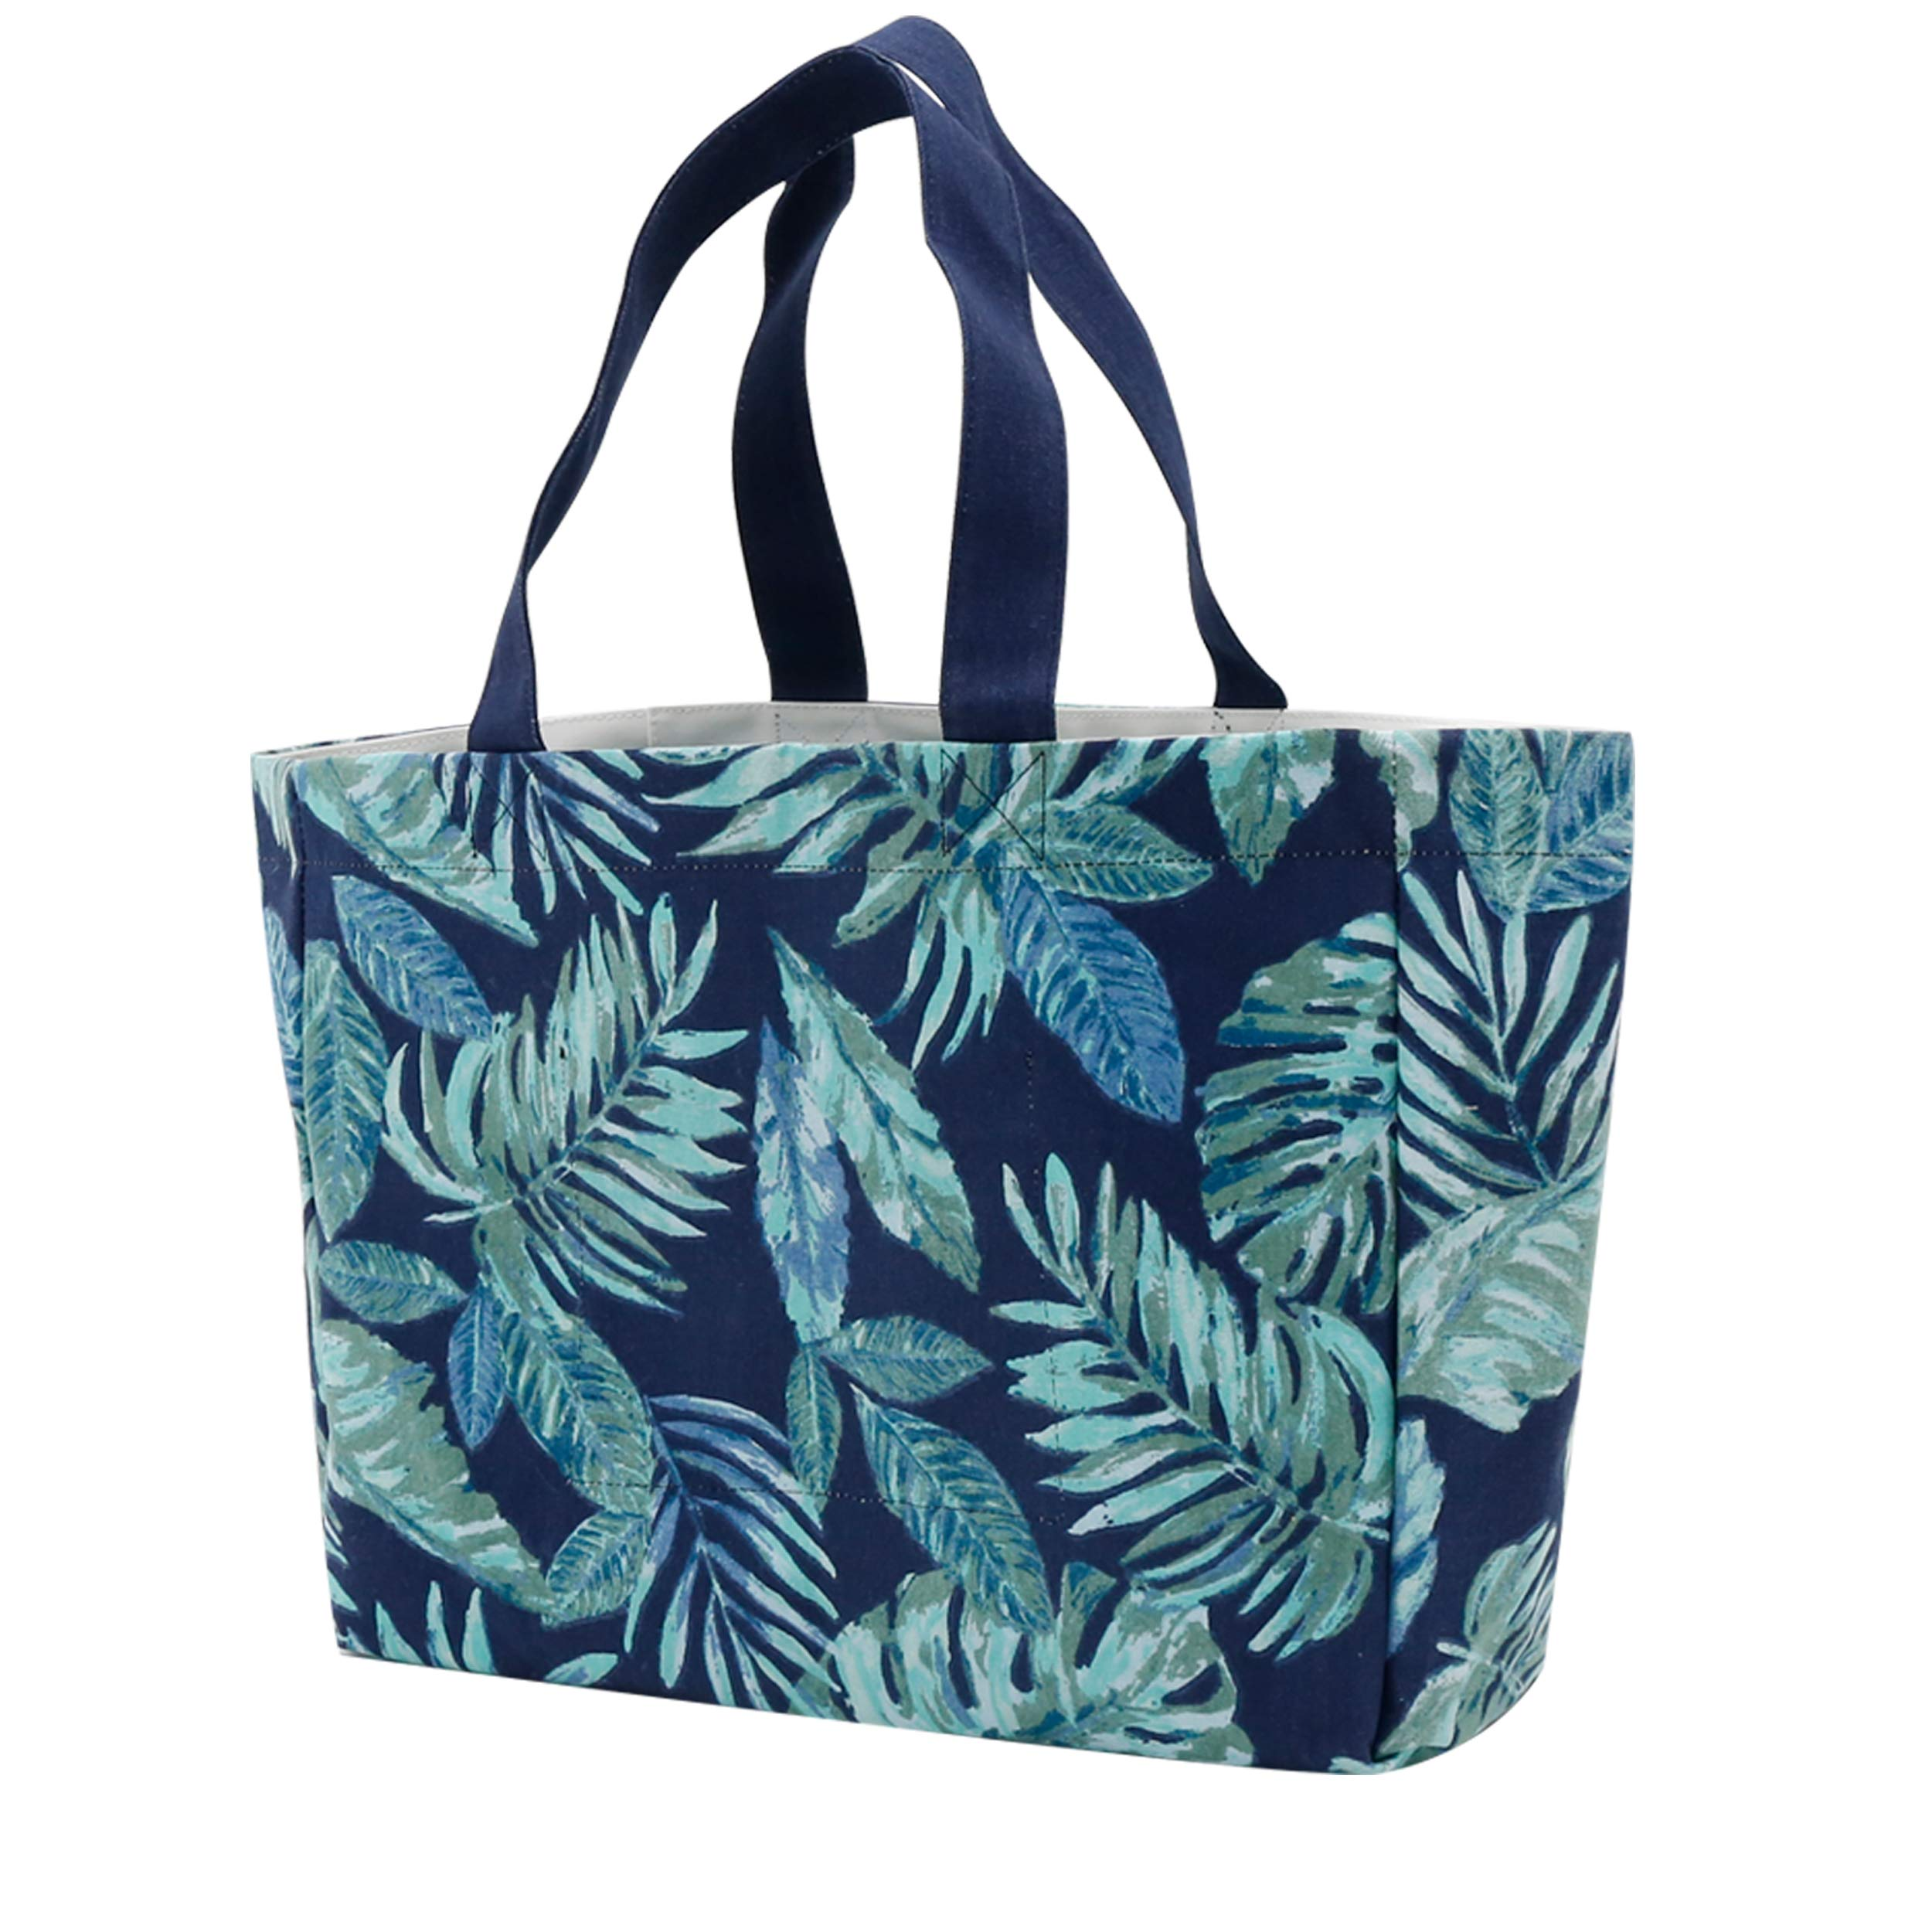 Beach Bag, Large Tote Bag Canvas Reusable with Water Resistant for Gym Beach Travel Shopping Daily Bags, Tropical